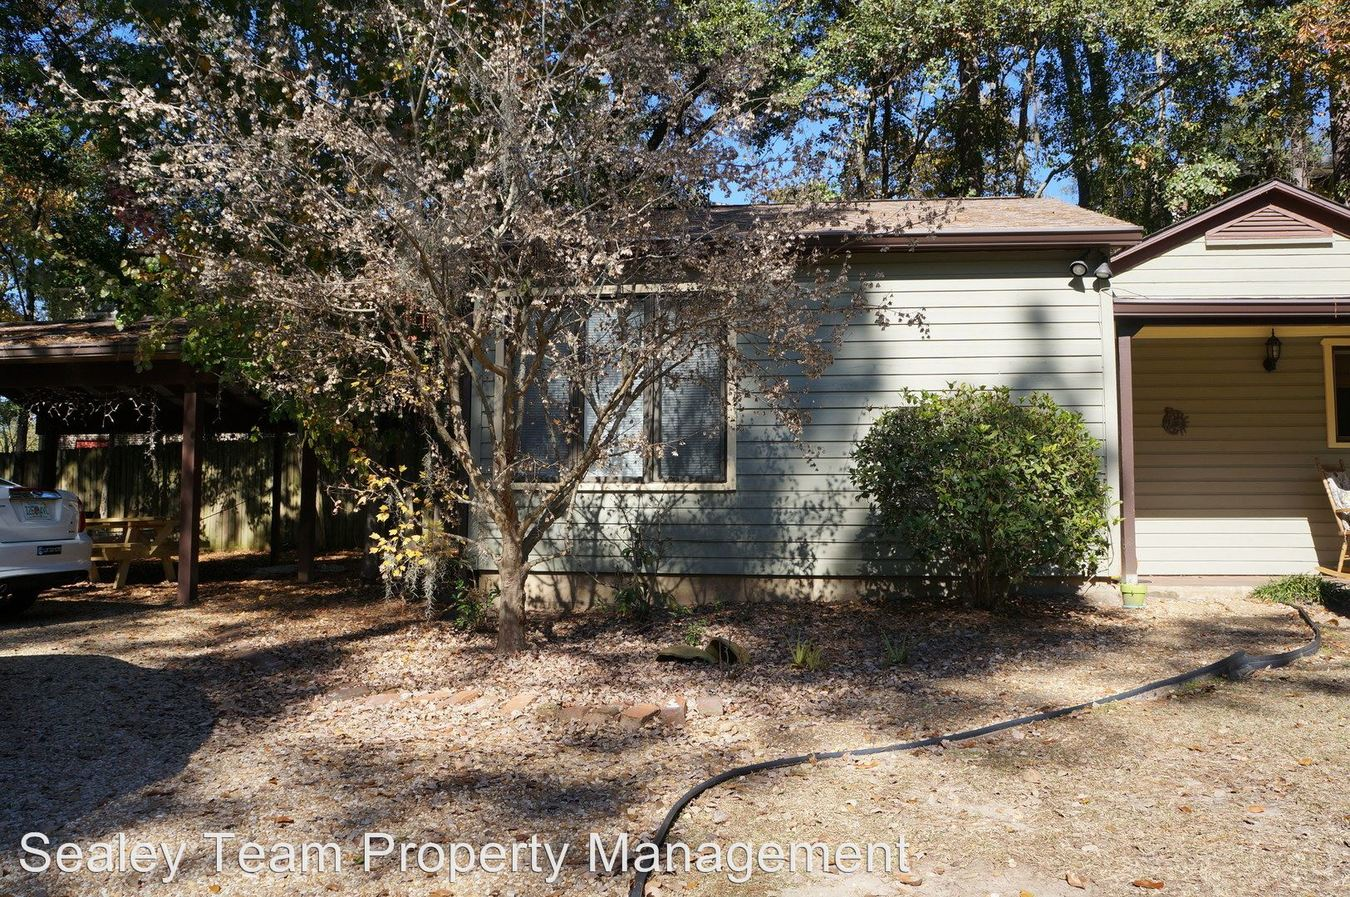 1 Bedroom 1 Bathroom Apartment for rent at 2306 Escambia Dr in Tallahassee, FL